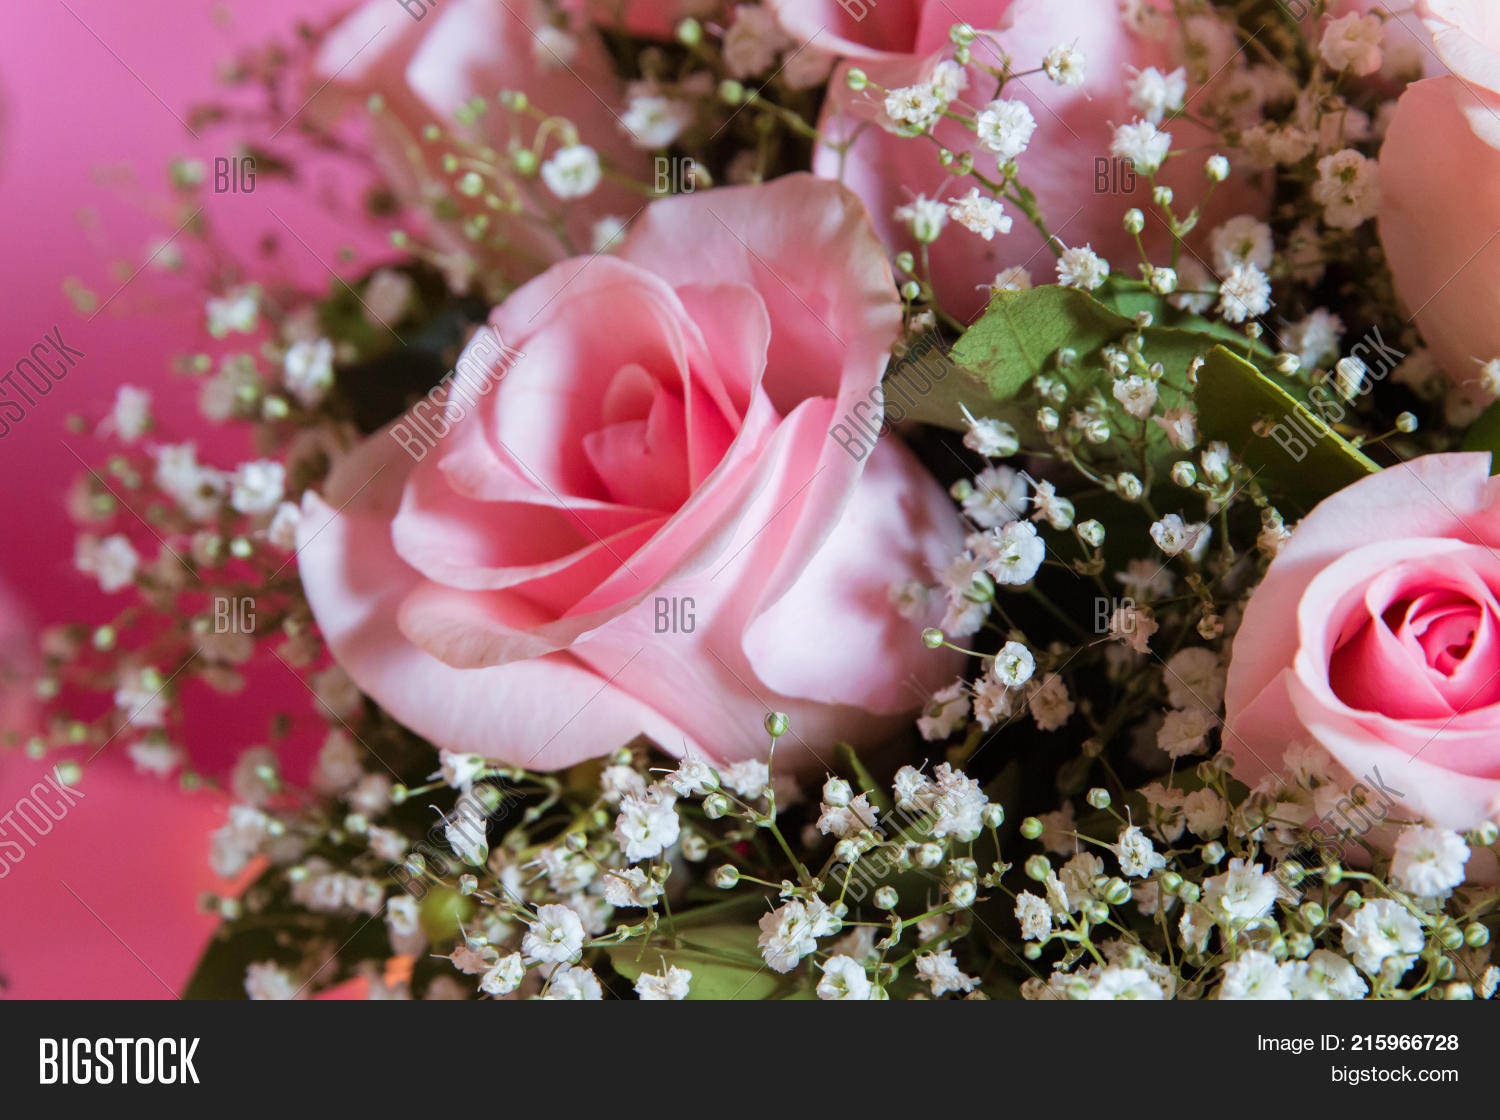 Candy Bar. Cage Image & Photo (Free Trial) | Bigstock